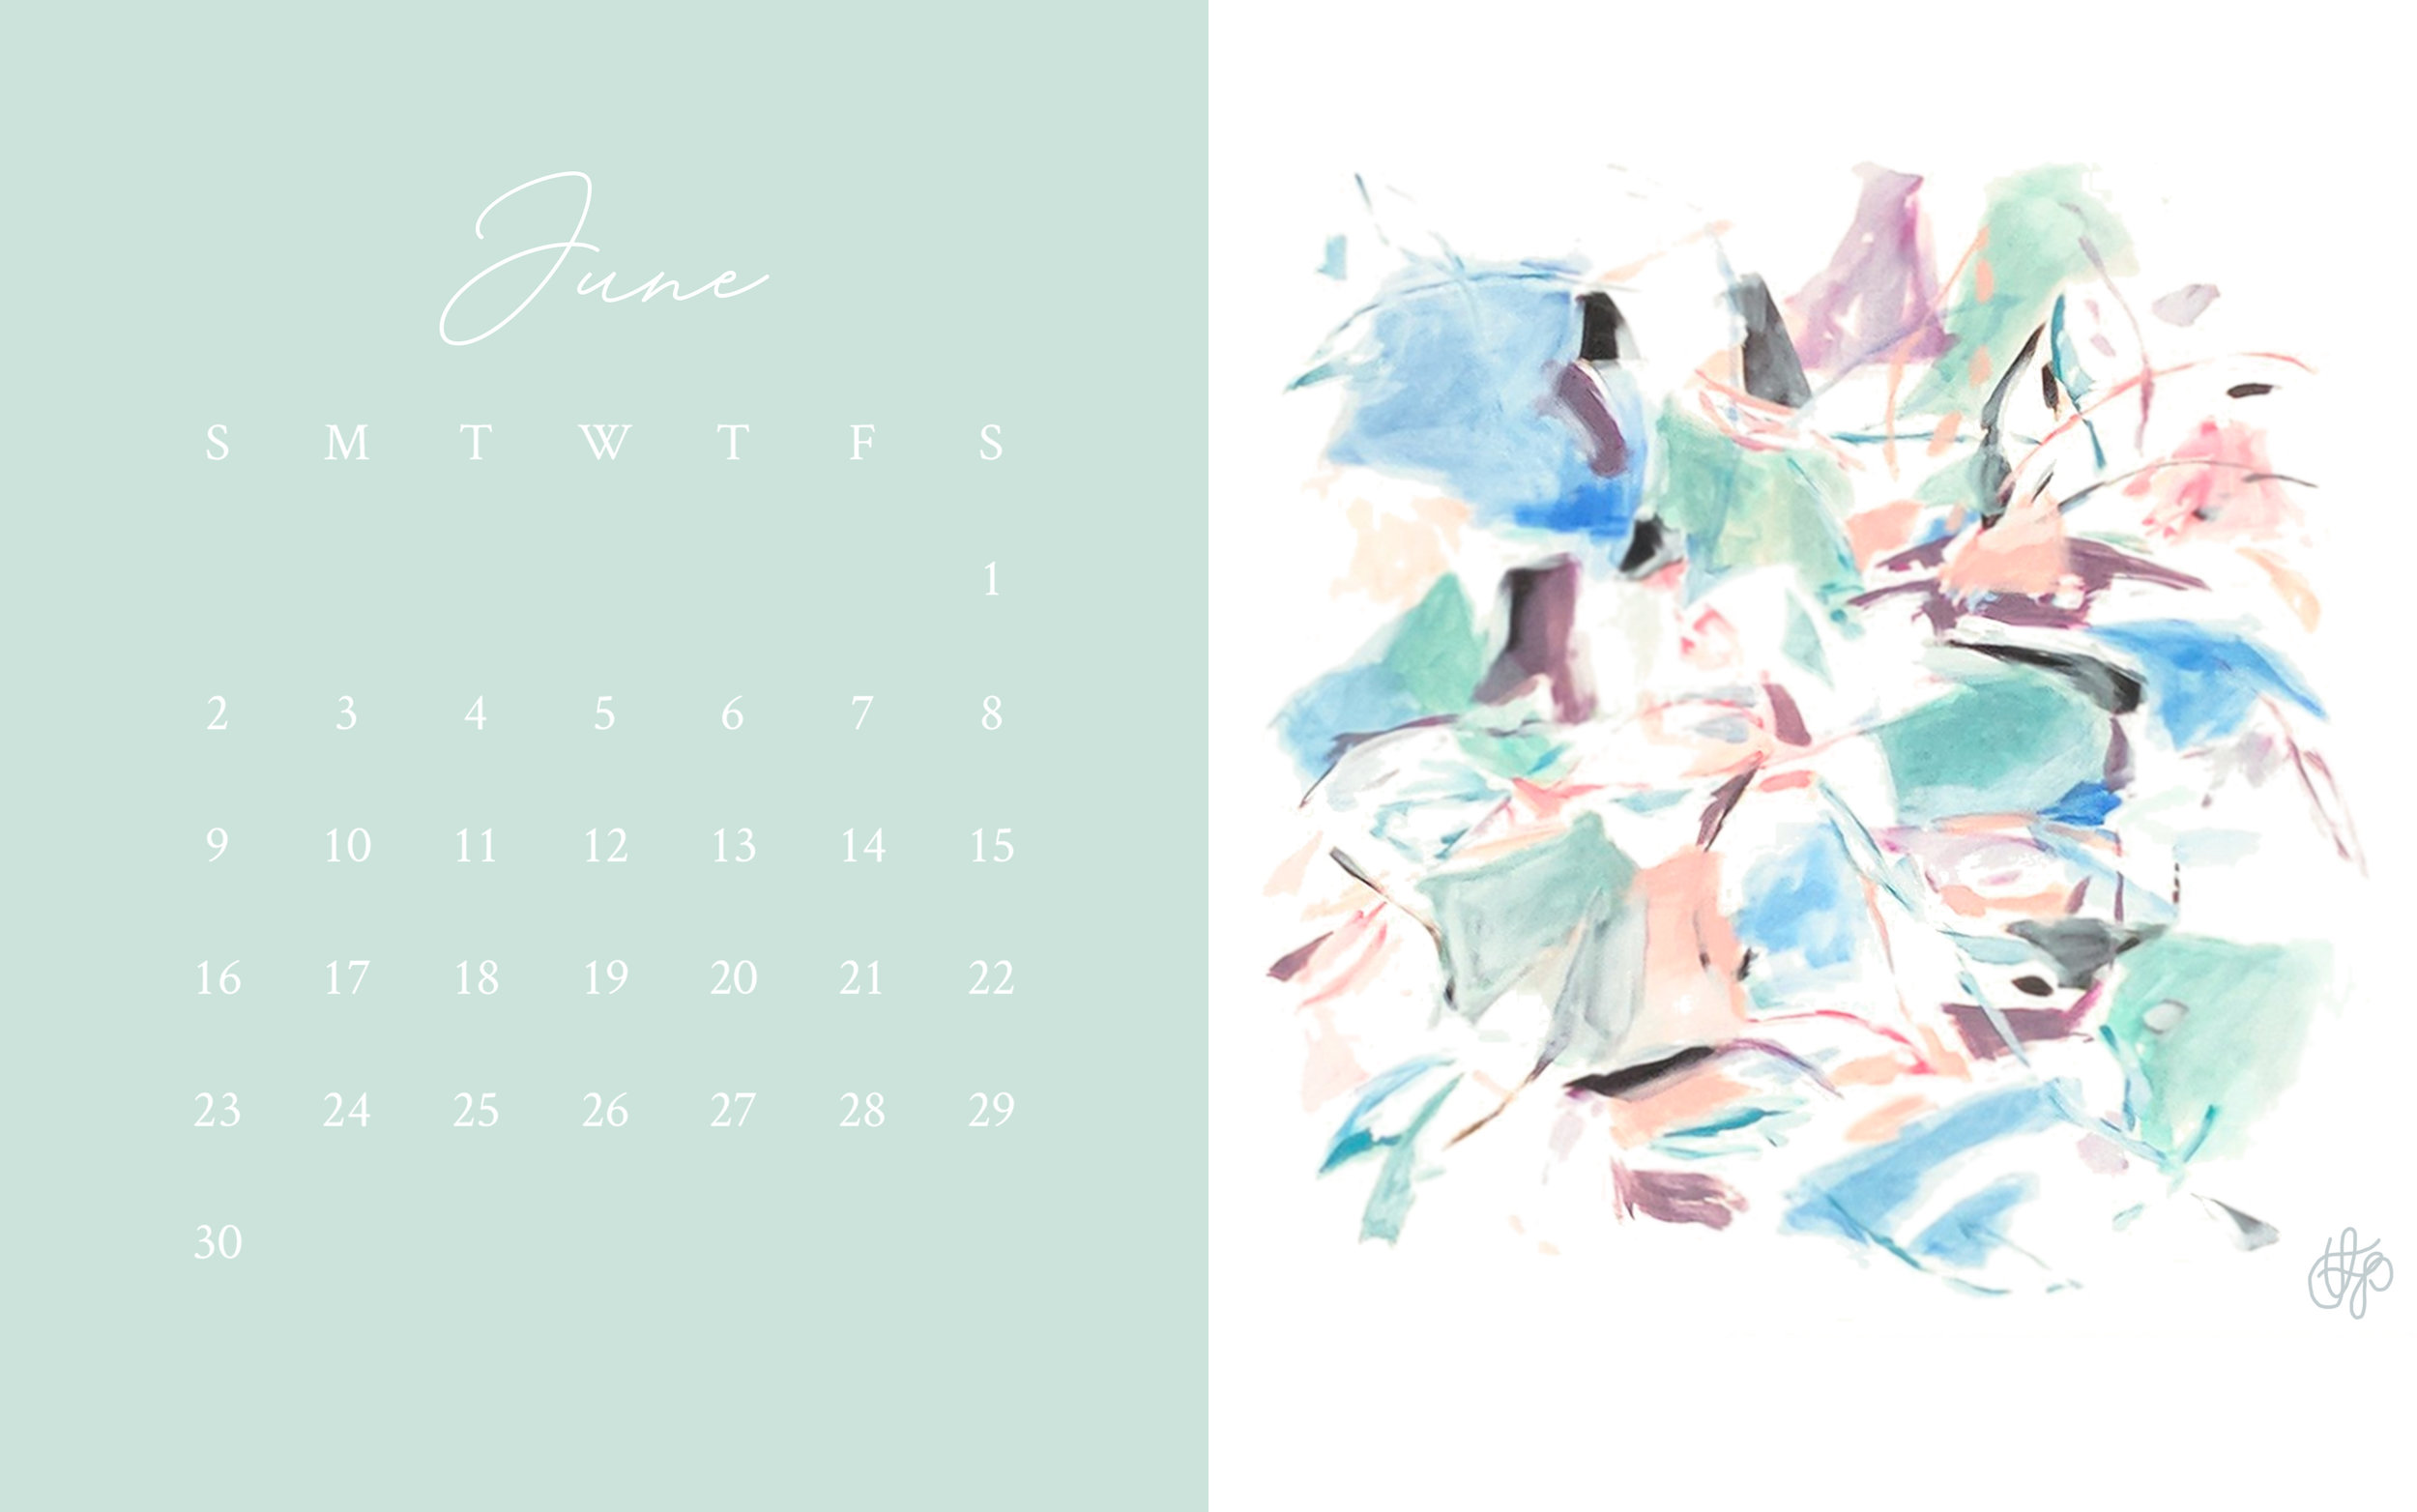 June Desktop Calendar.jpg